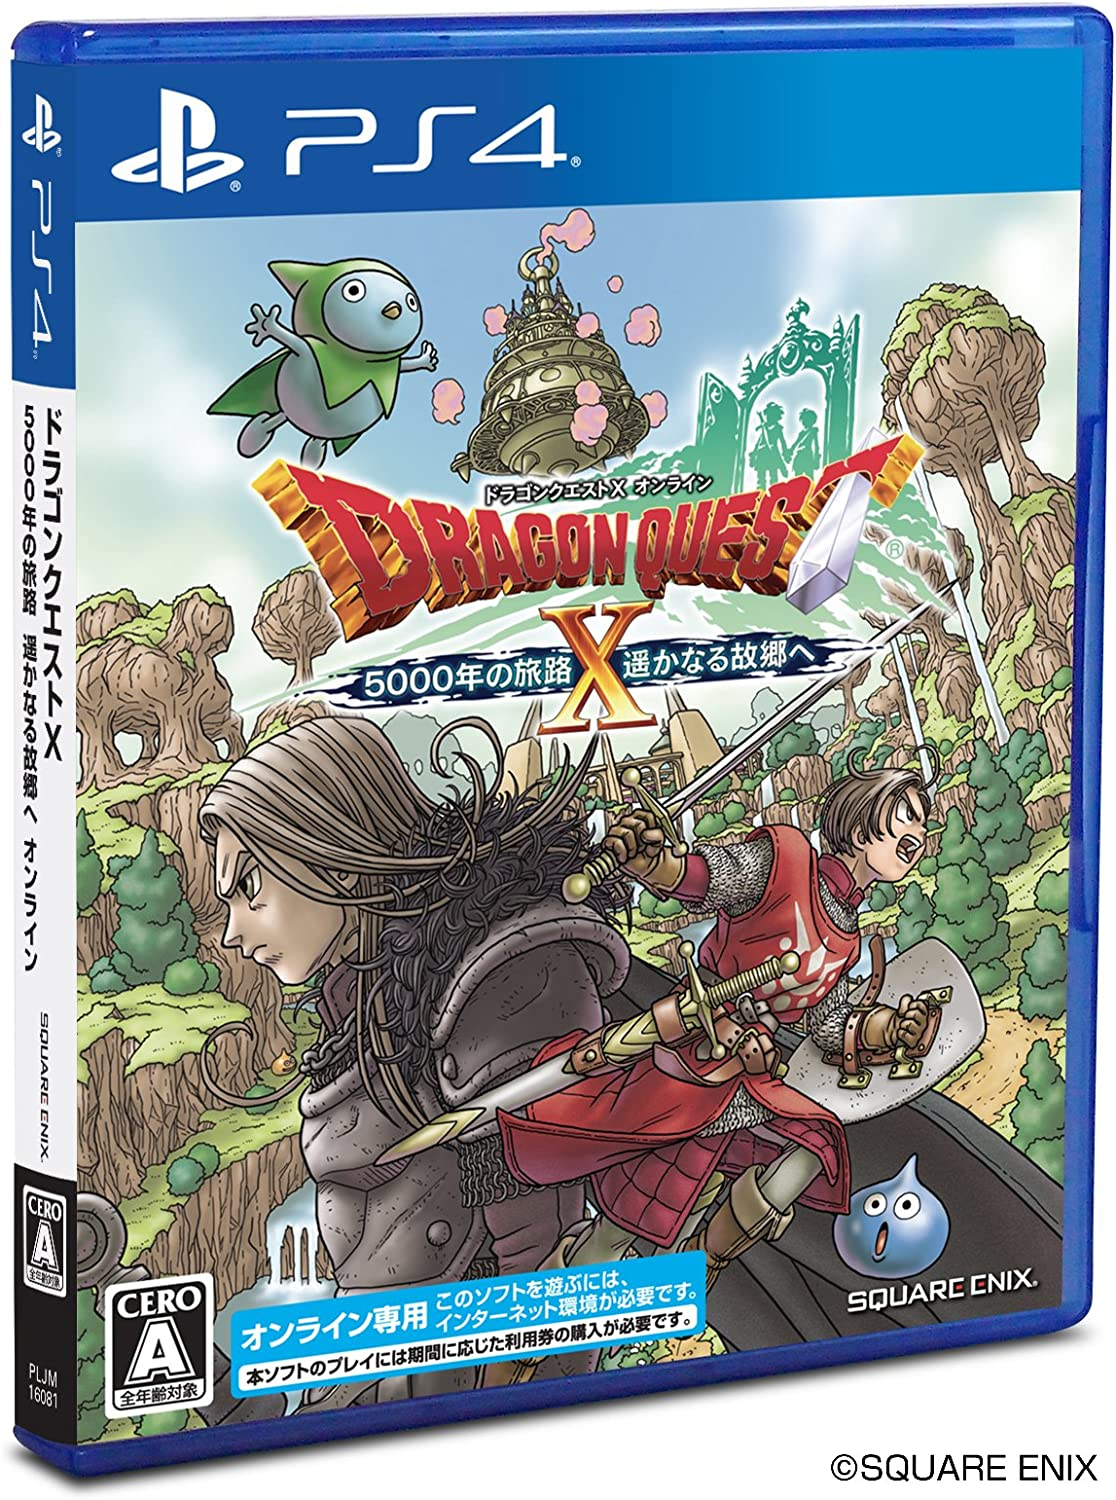 Dragon Quest X 5000 Year Journey to a Faraway Hometown SONY PS4 PLAYSTATION 4 JAPANESE Version: Amazon.es: Juguetes y juegos